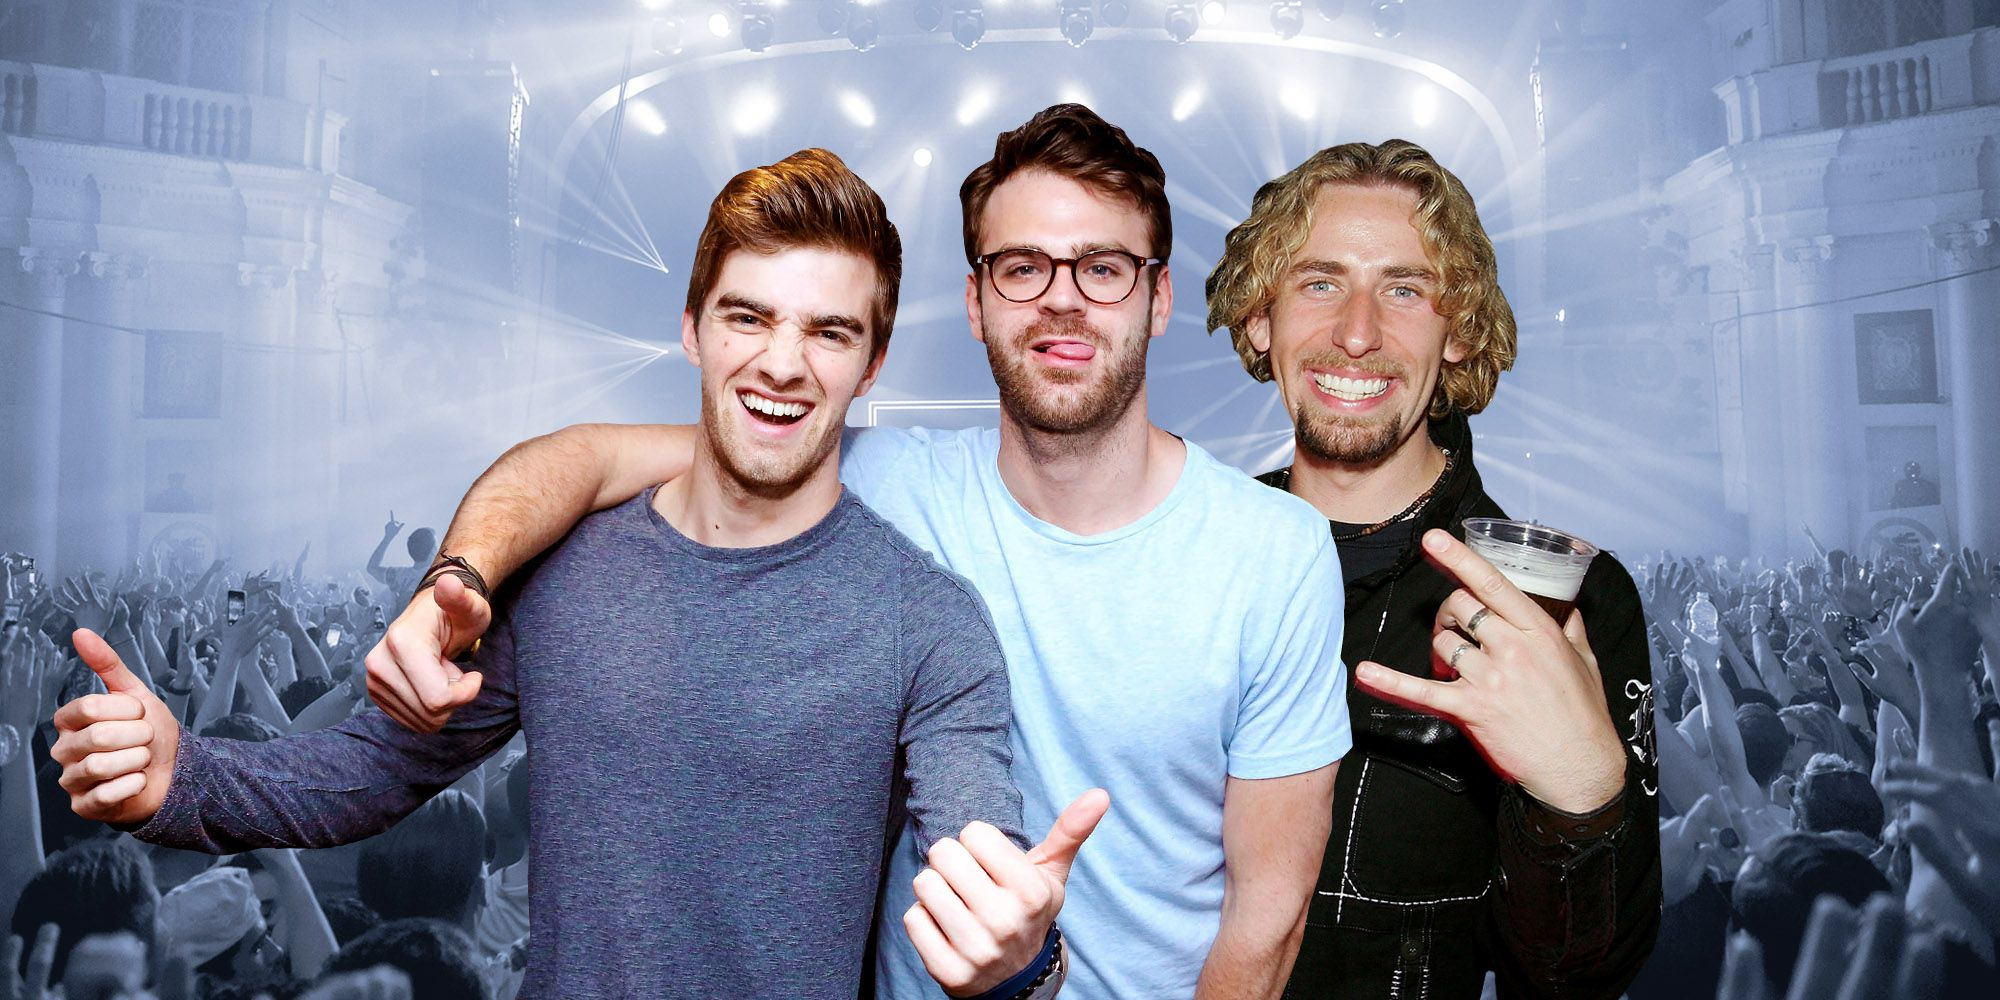 New Chainsmokers Song Sick Boy Review The Bravely Ask Hugo Boss Endrio Hitam Image